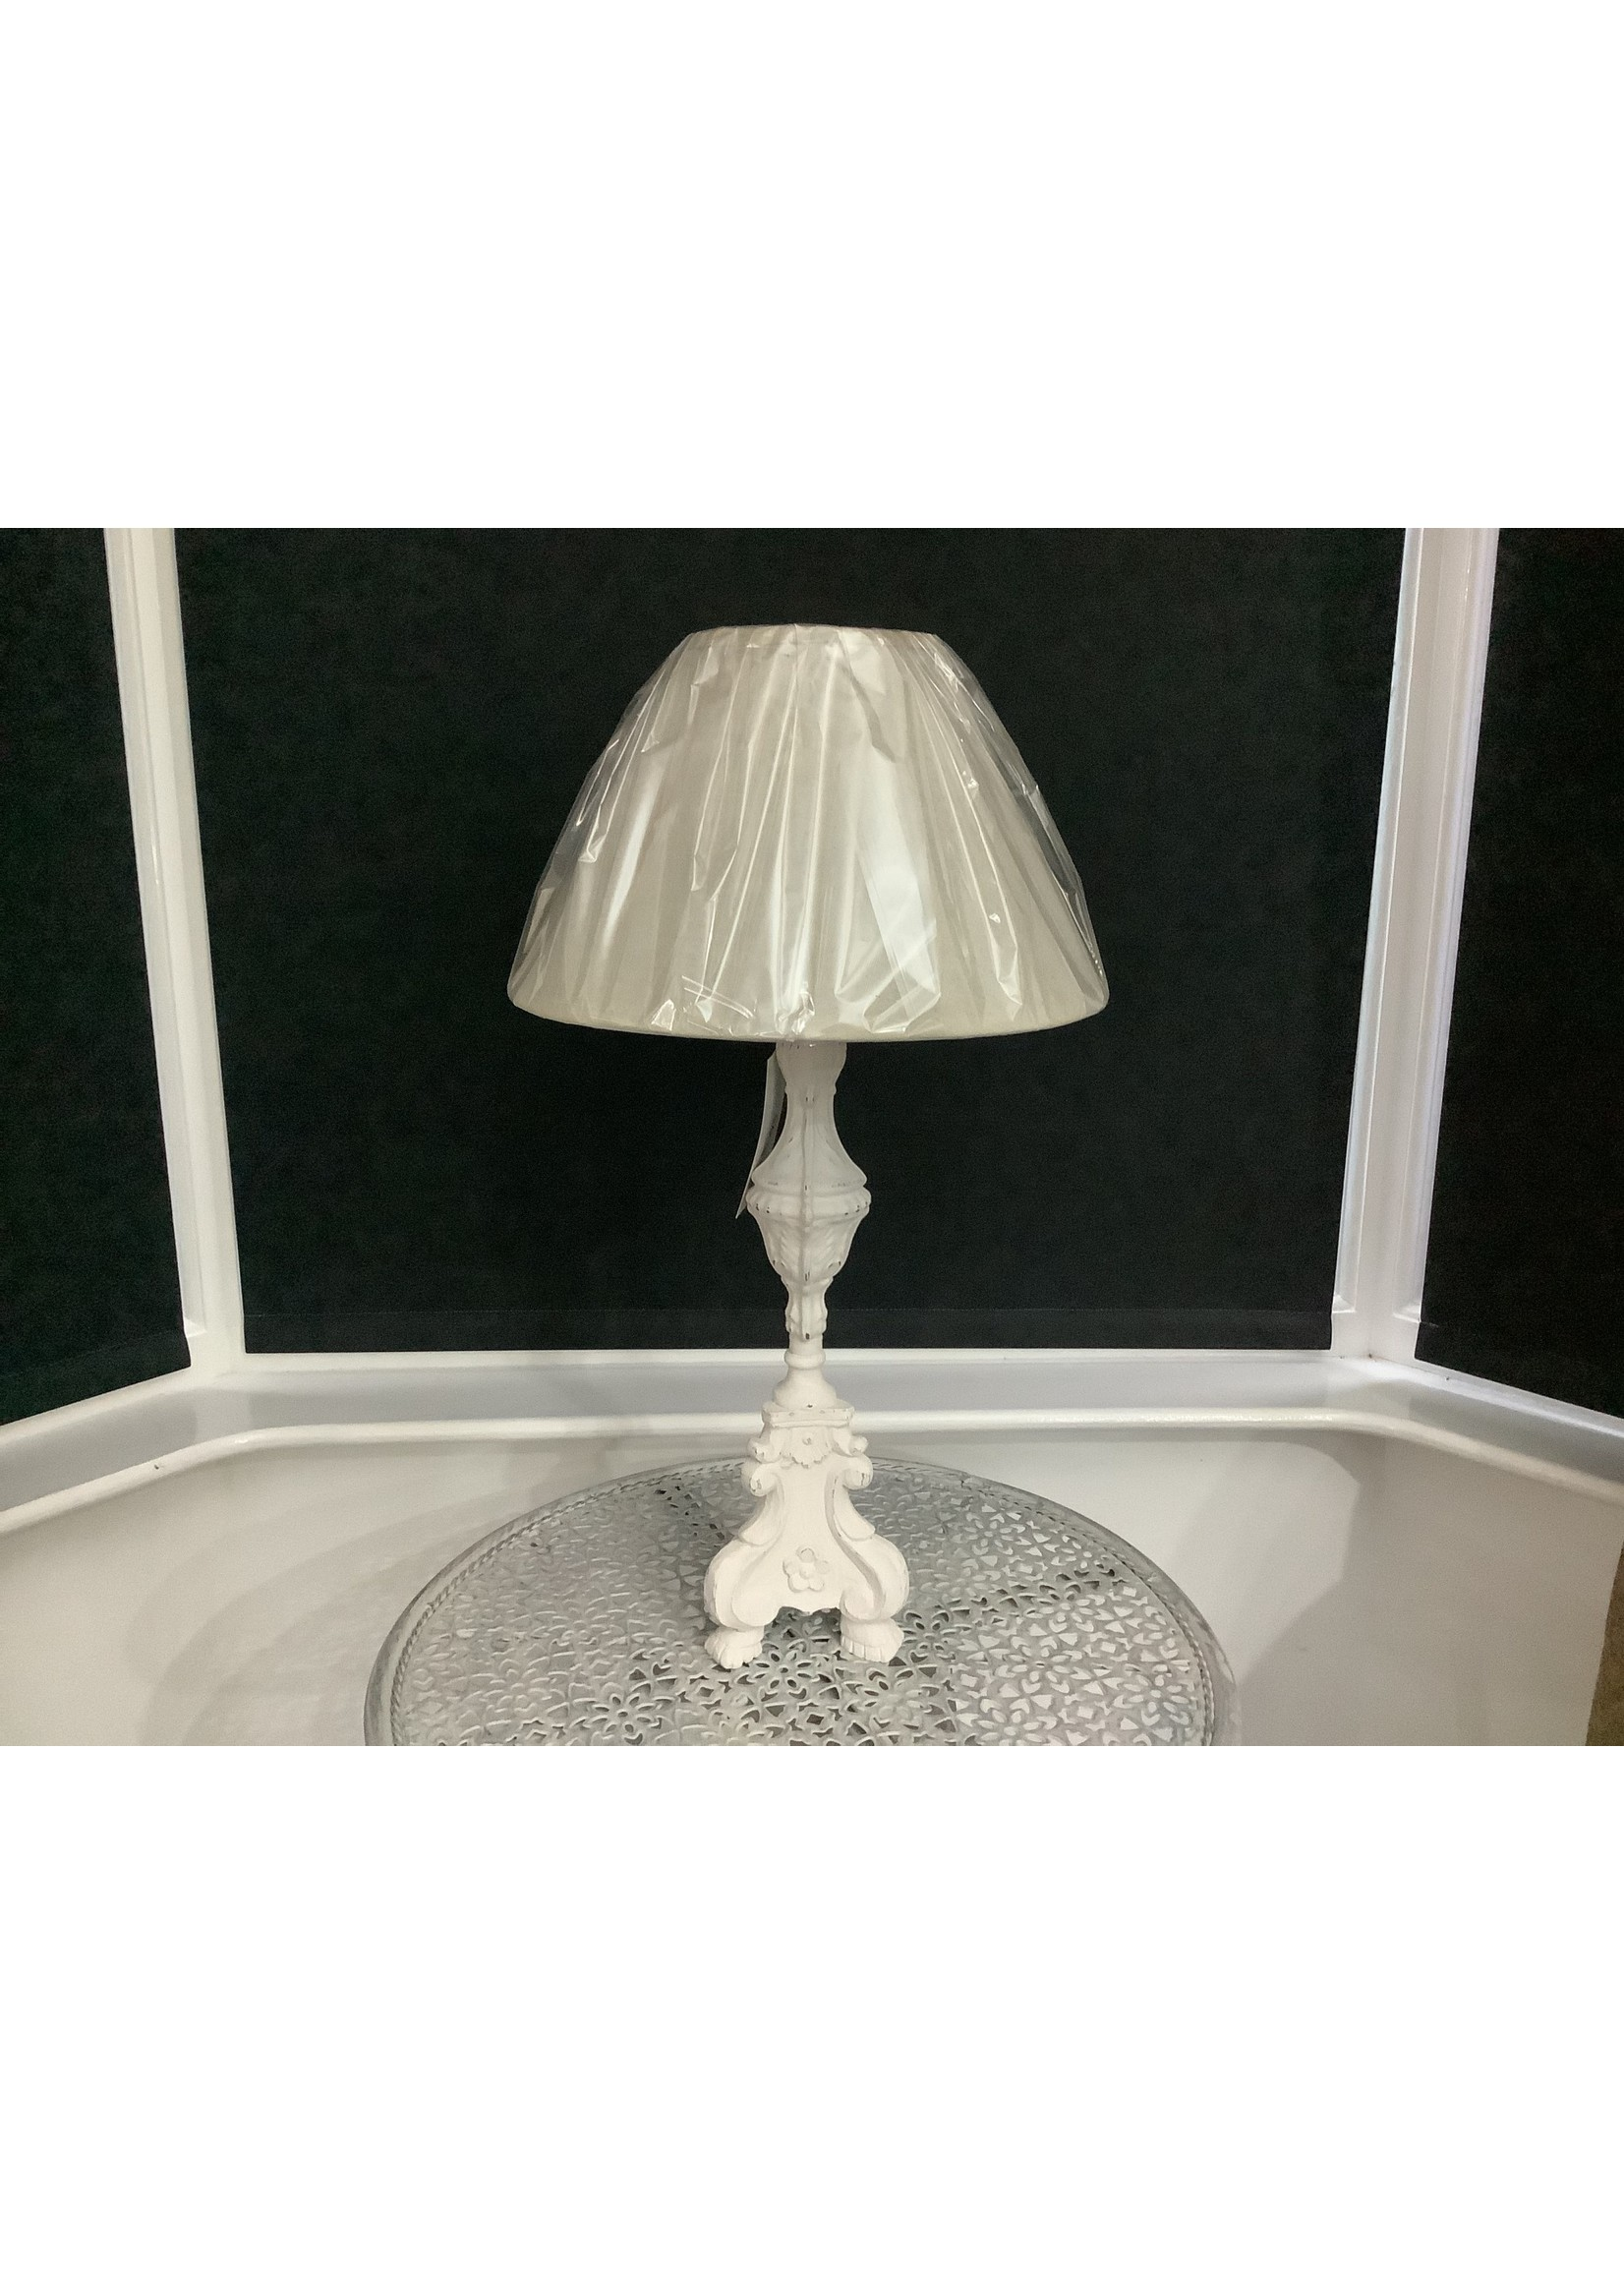 White Wooden affect table lamp 60cm